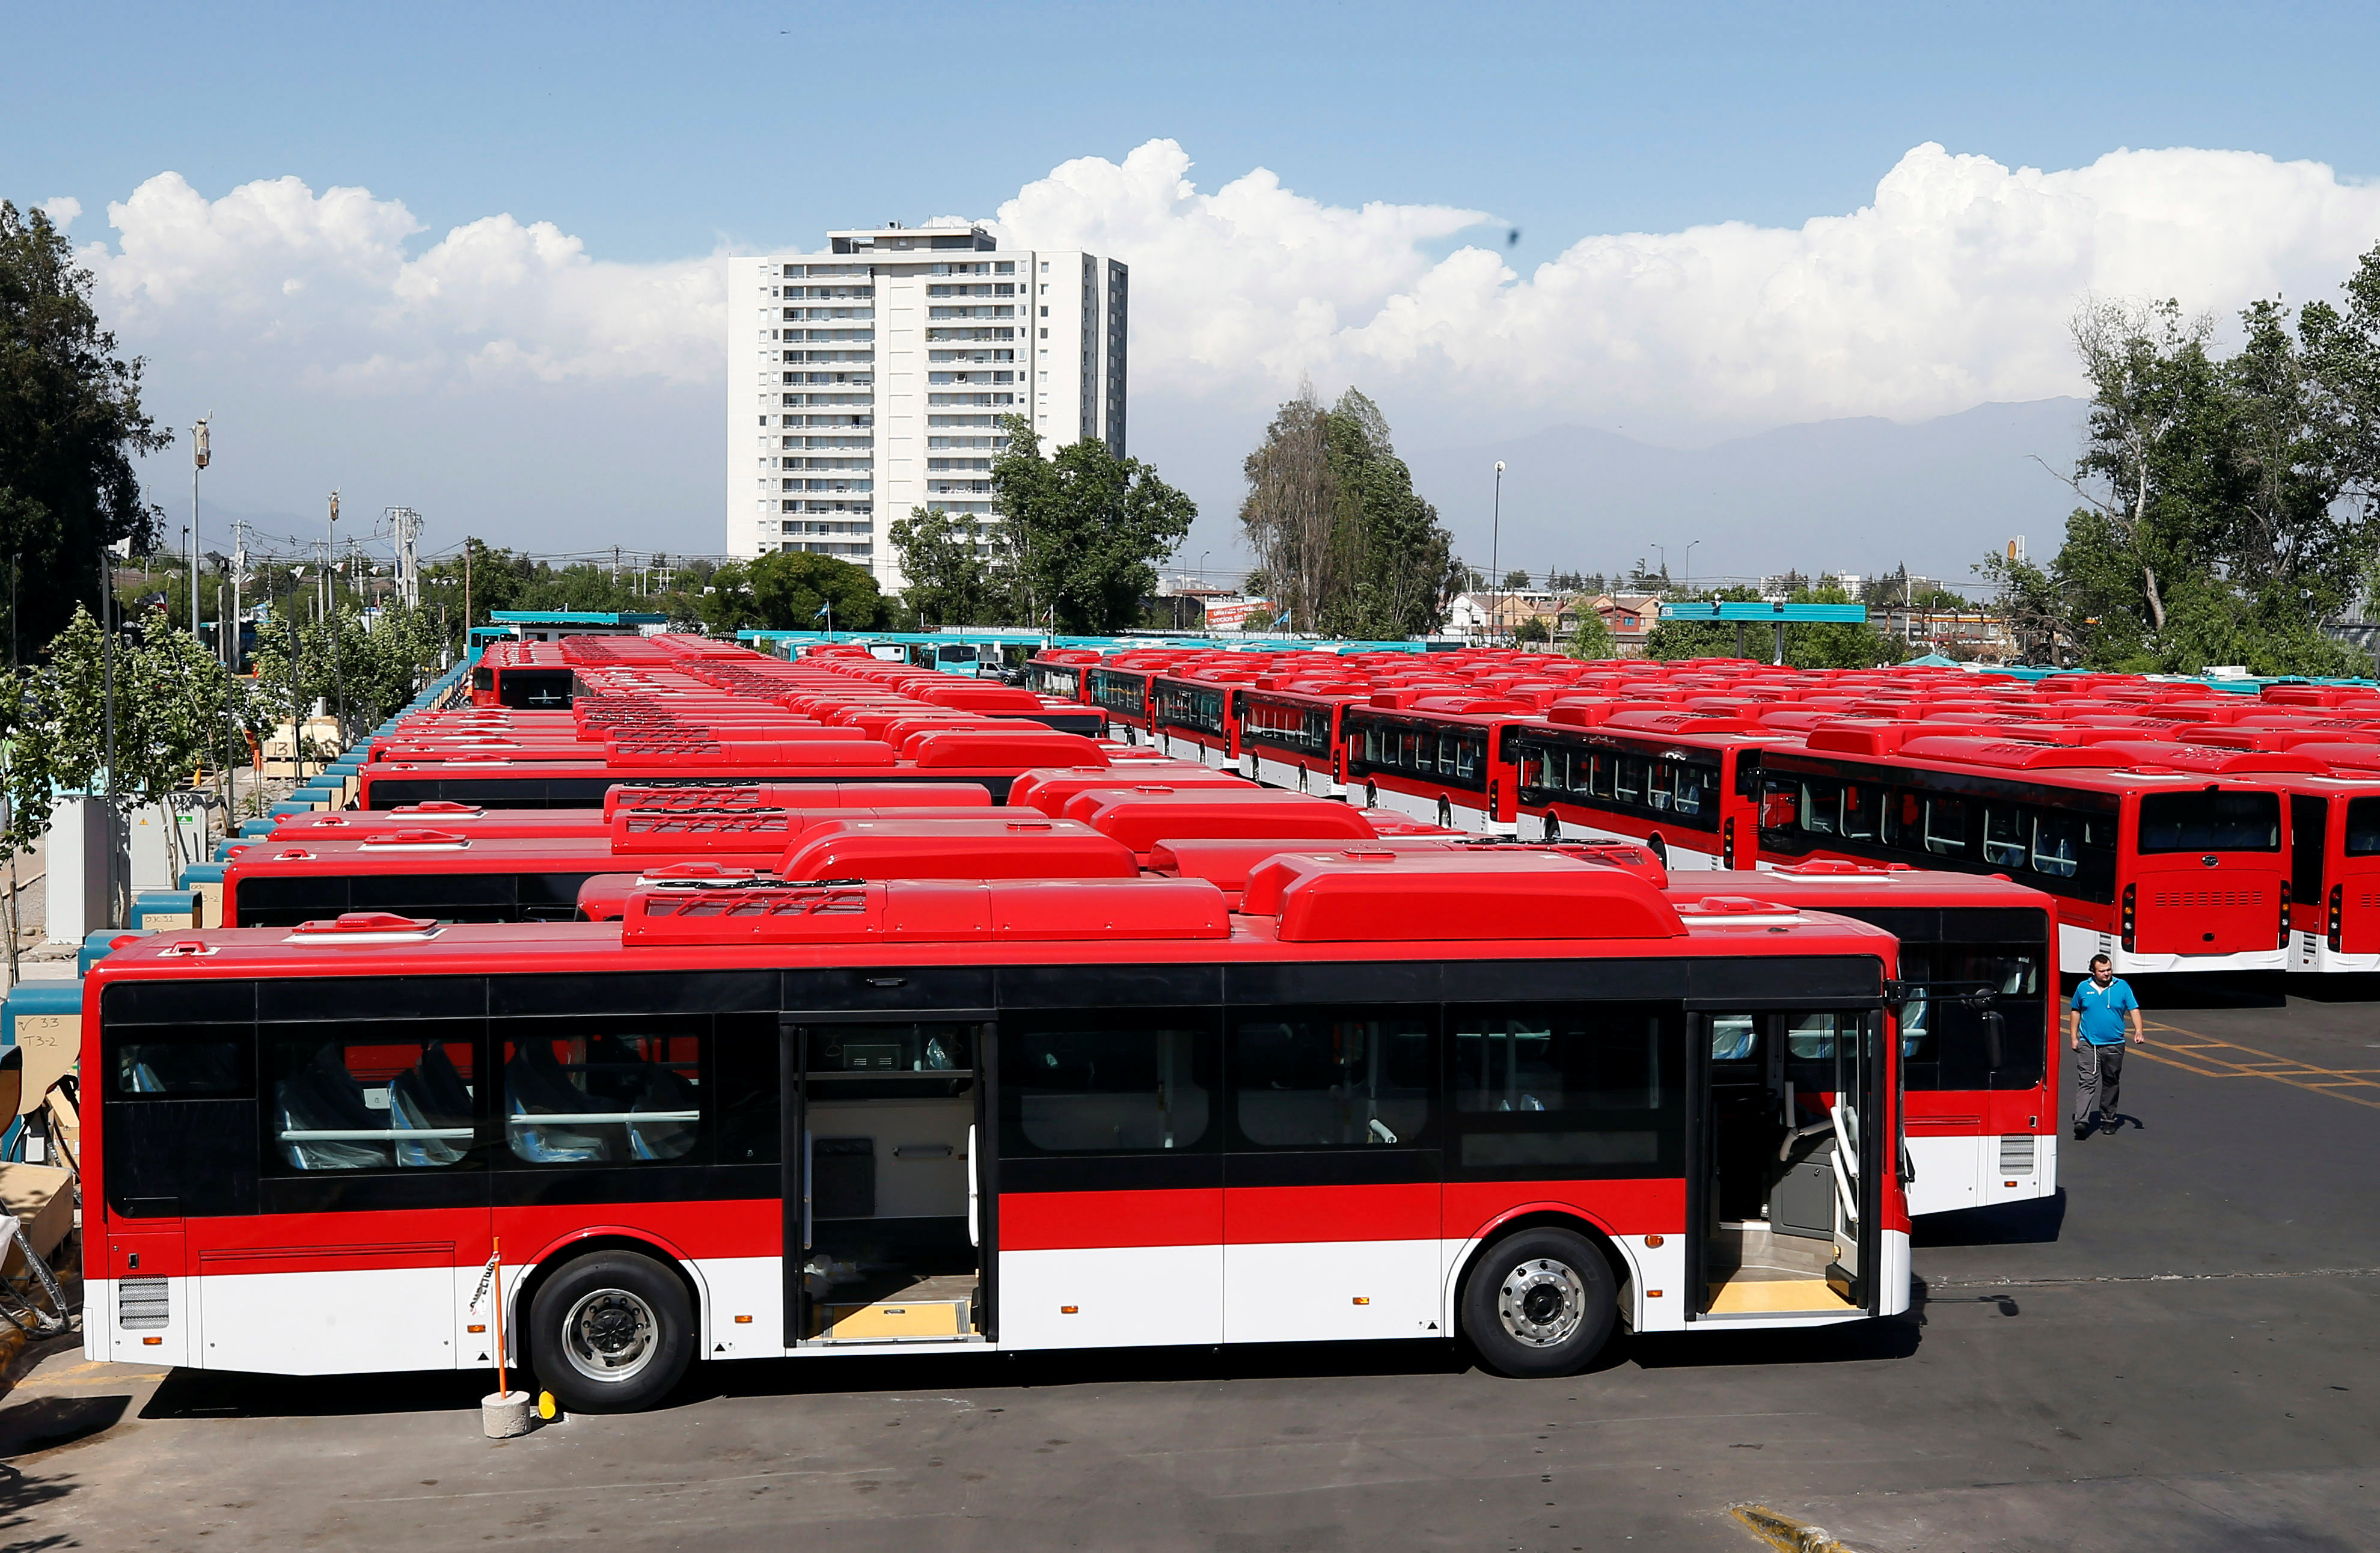 The new fleet of electric buses for public transport manufactured by China's BYD, are parked in a bus terminal in Santiago, Chile November 28, 2018.